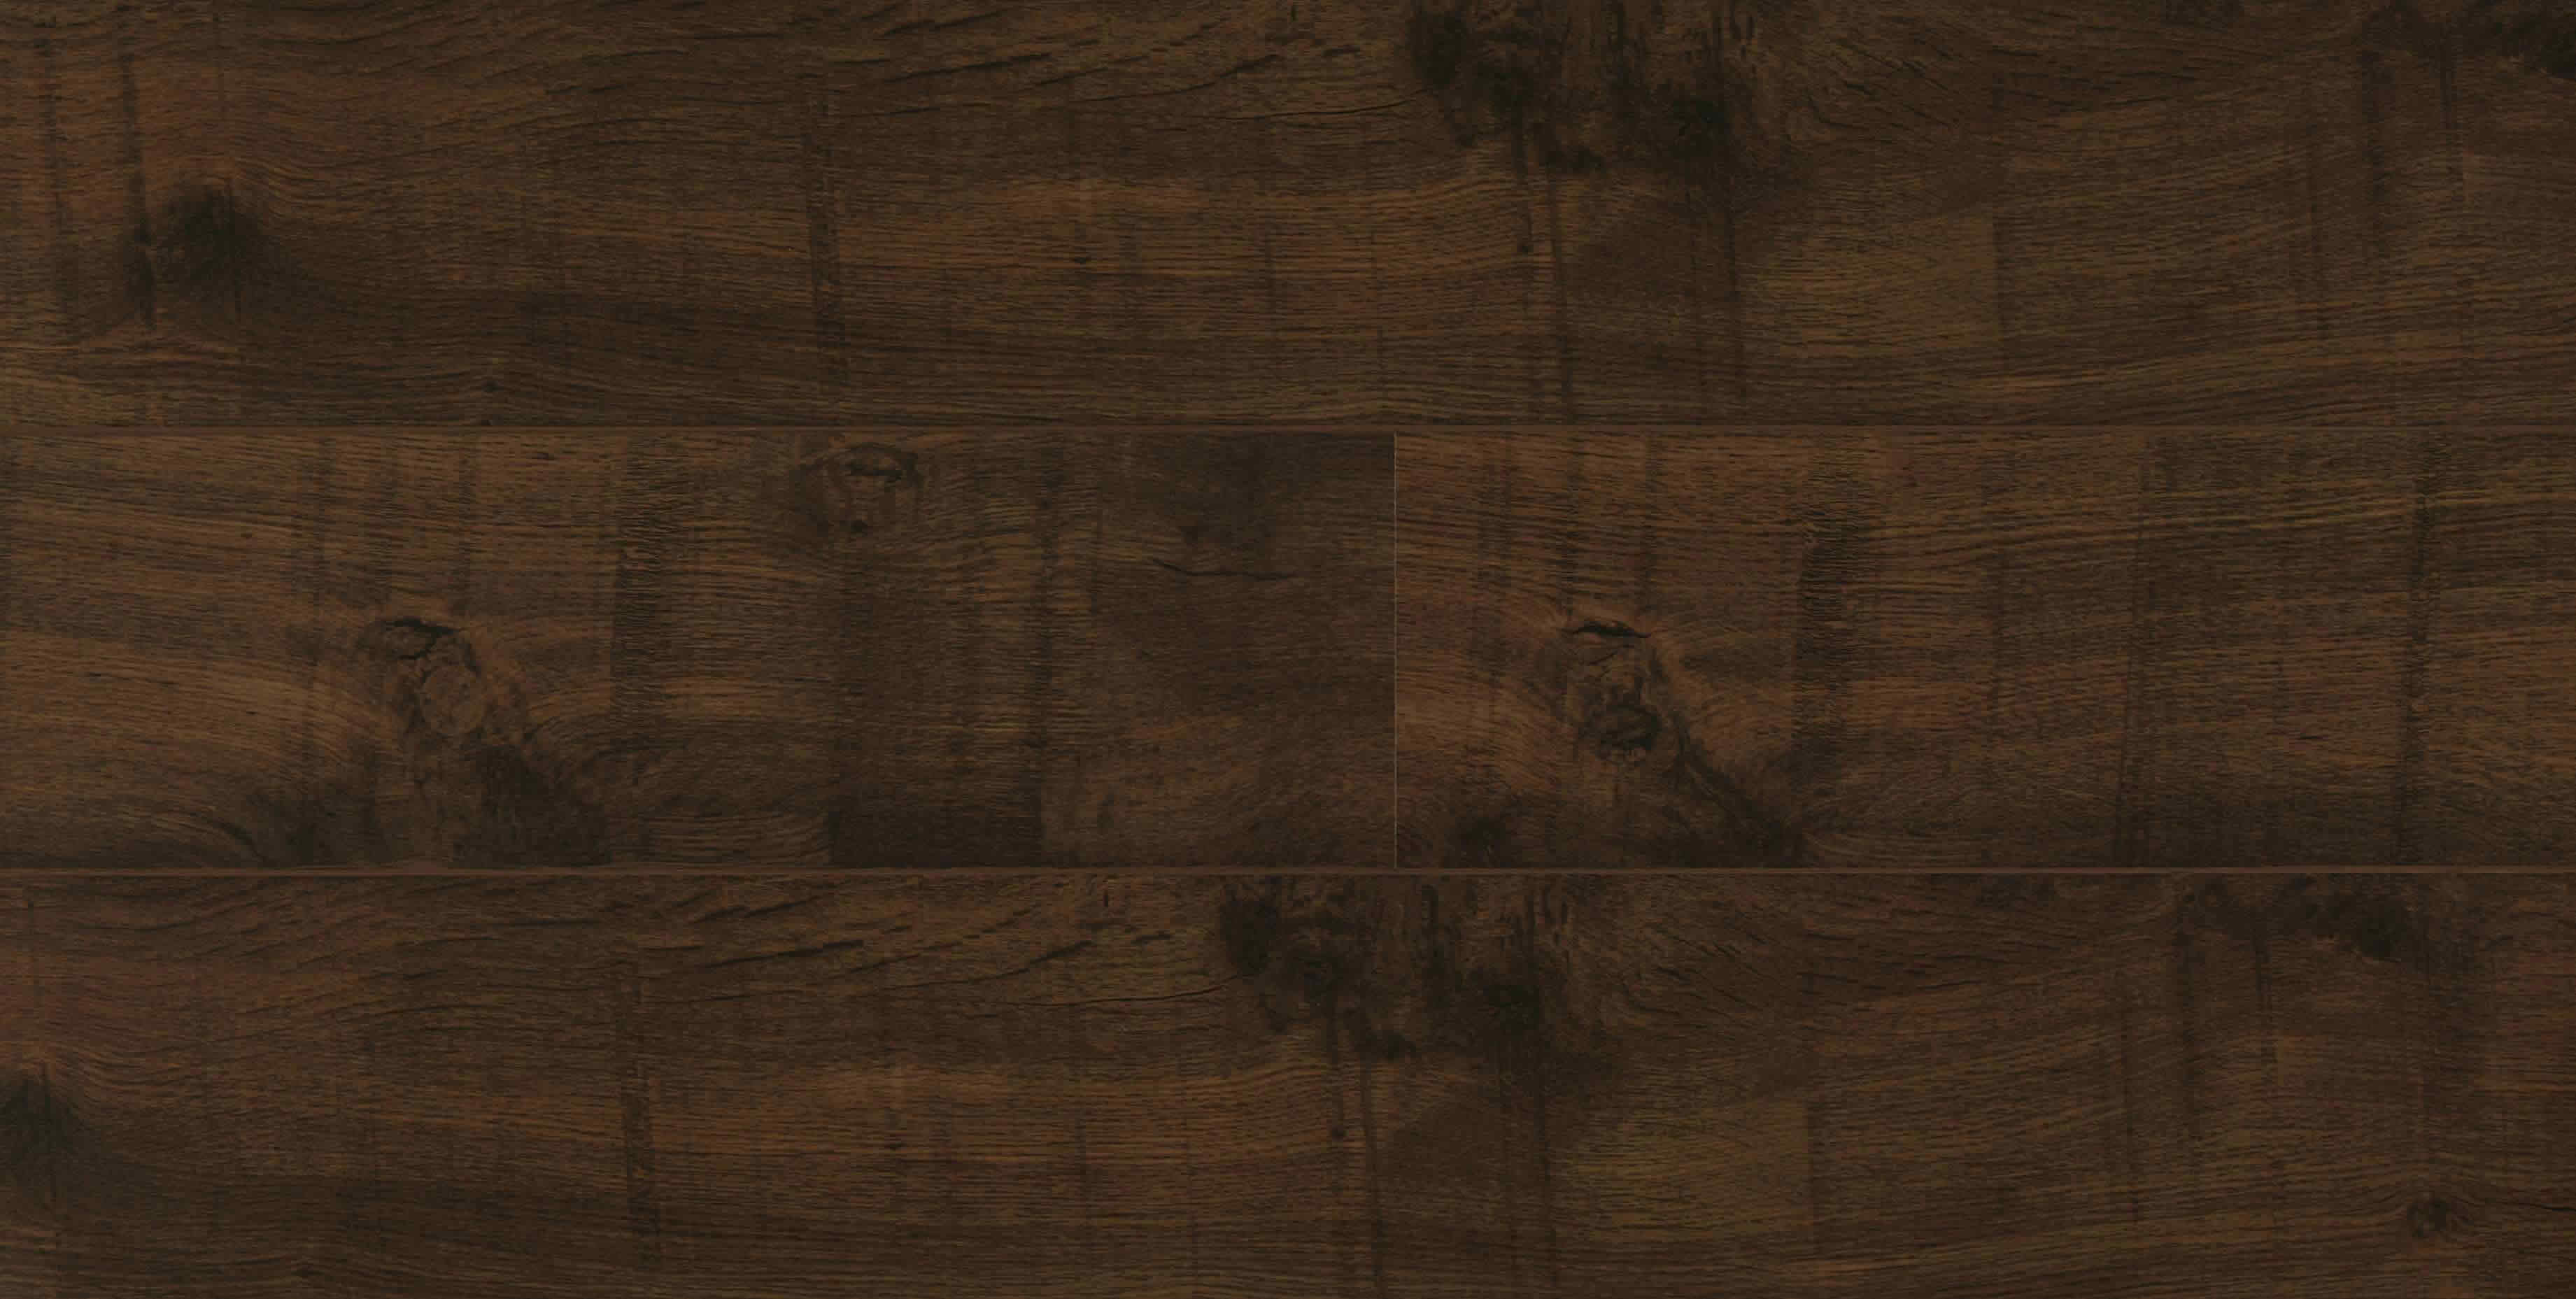 Wood background texture, wooden tiles free image